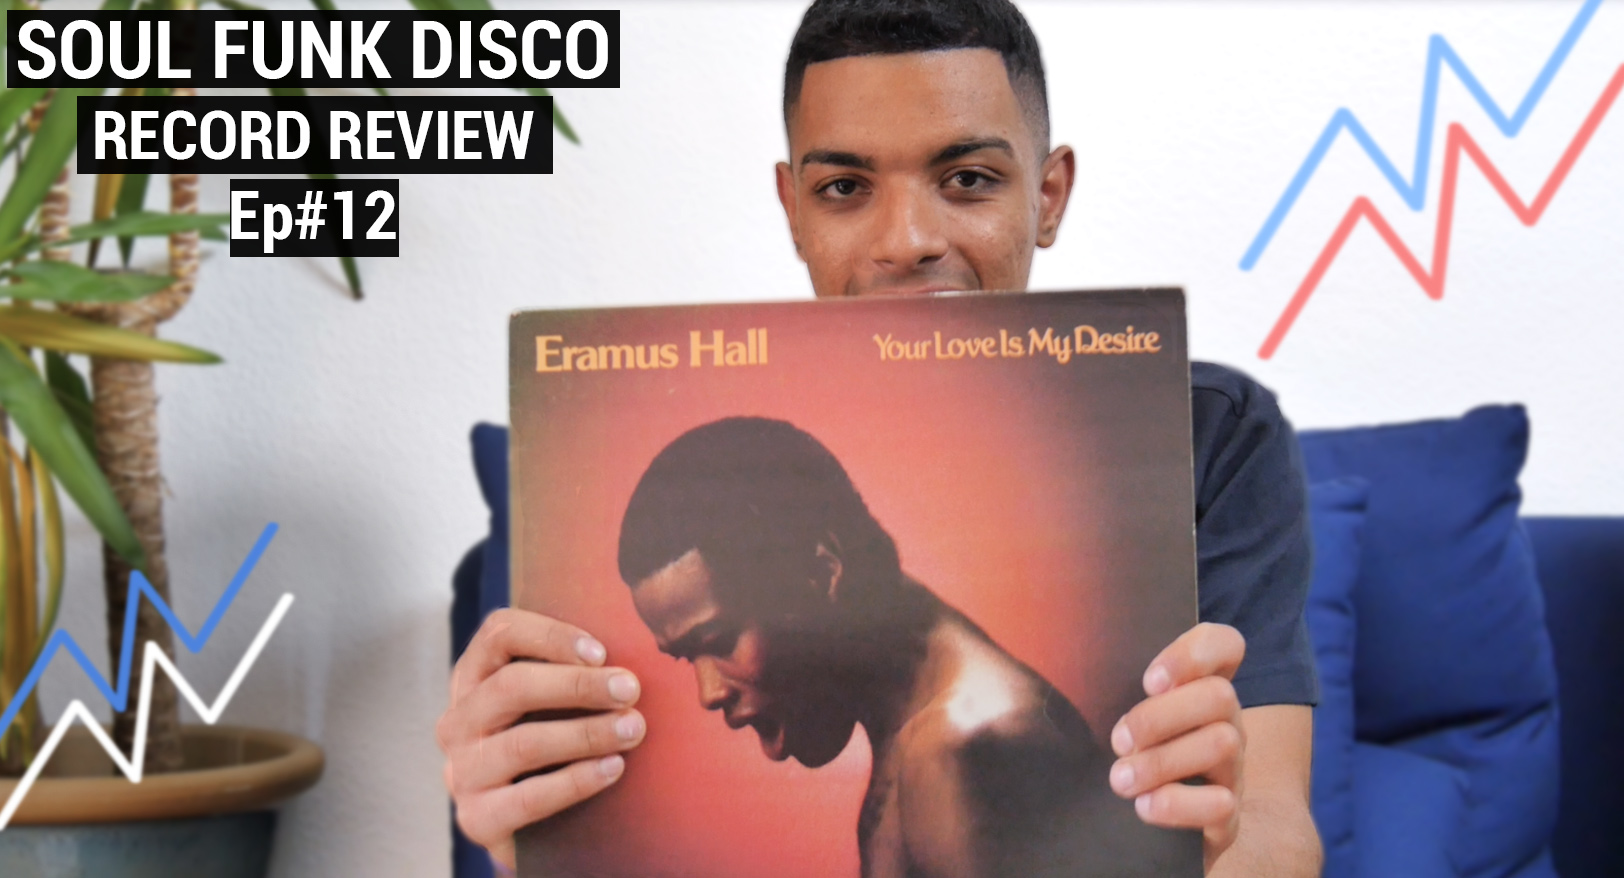 Crate Diggers Ep12- Disco Soul Funk records reviews